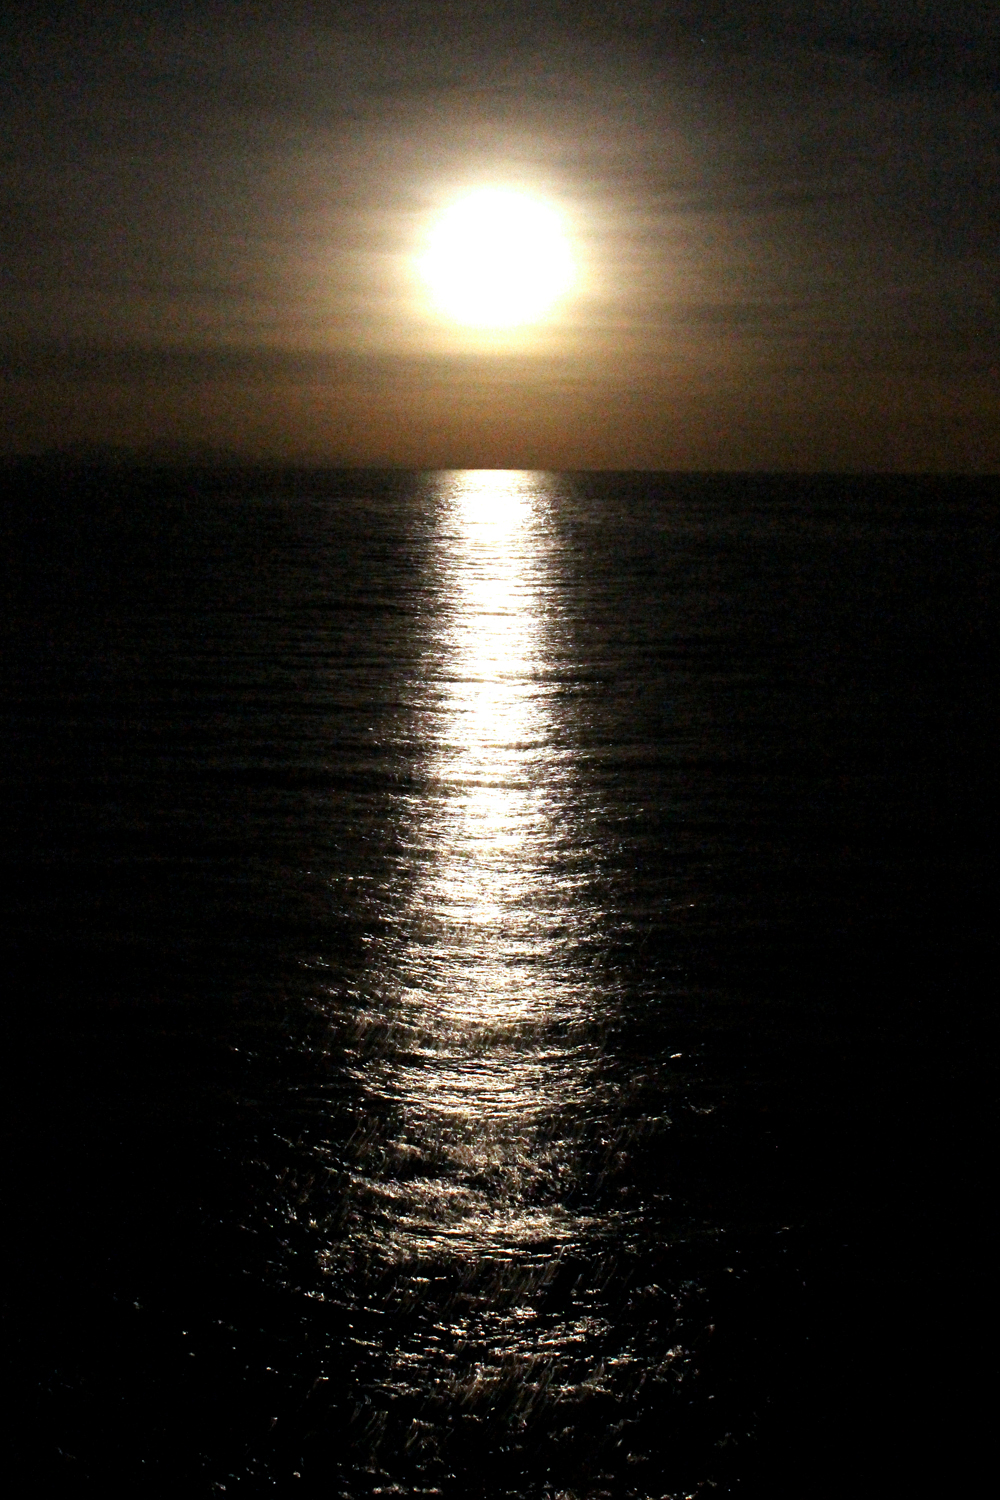 Moonlight on Lake Titicaca, Peru - South America travel blog